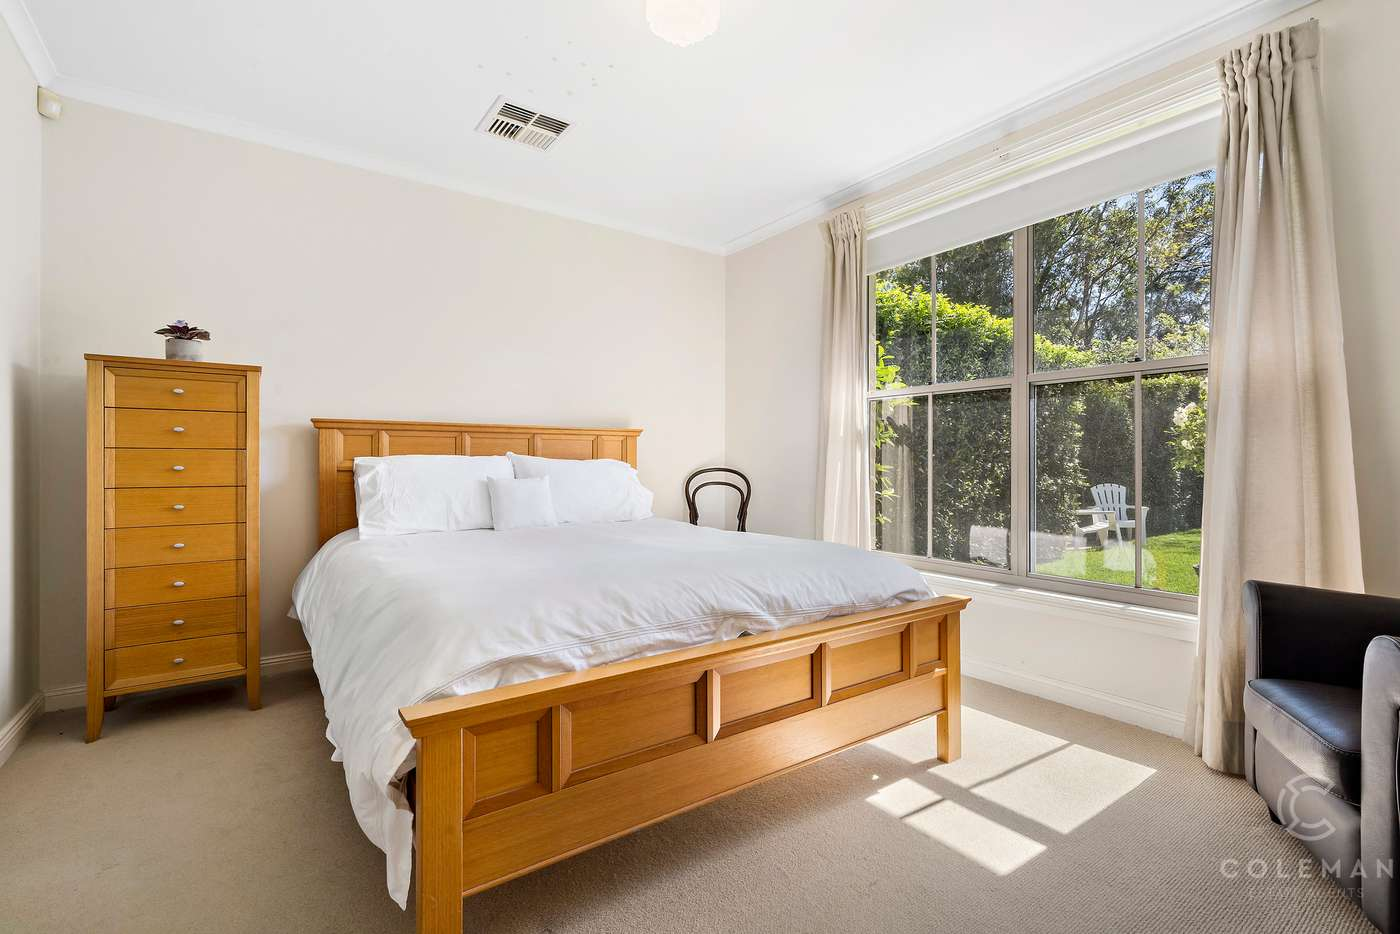 Fifth view of Homely house listing, 41 Cams Boulevard, Summerland Point NSW 2259